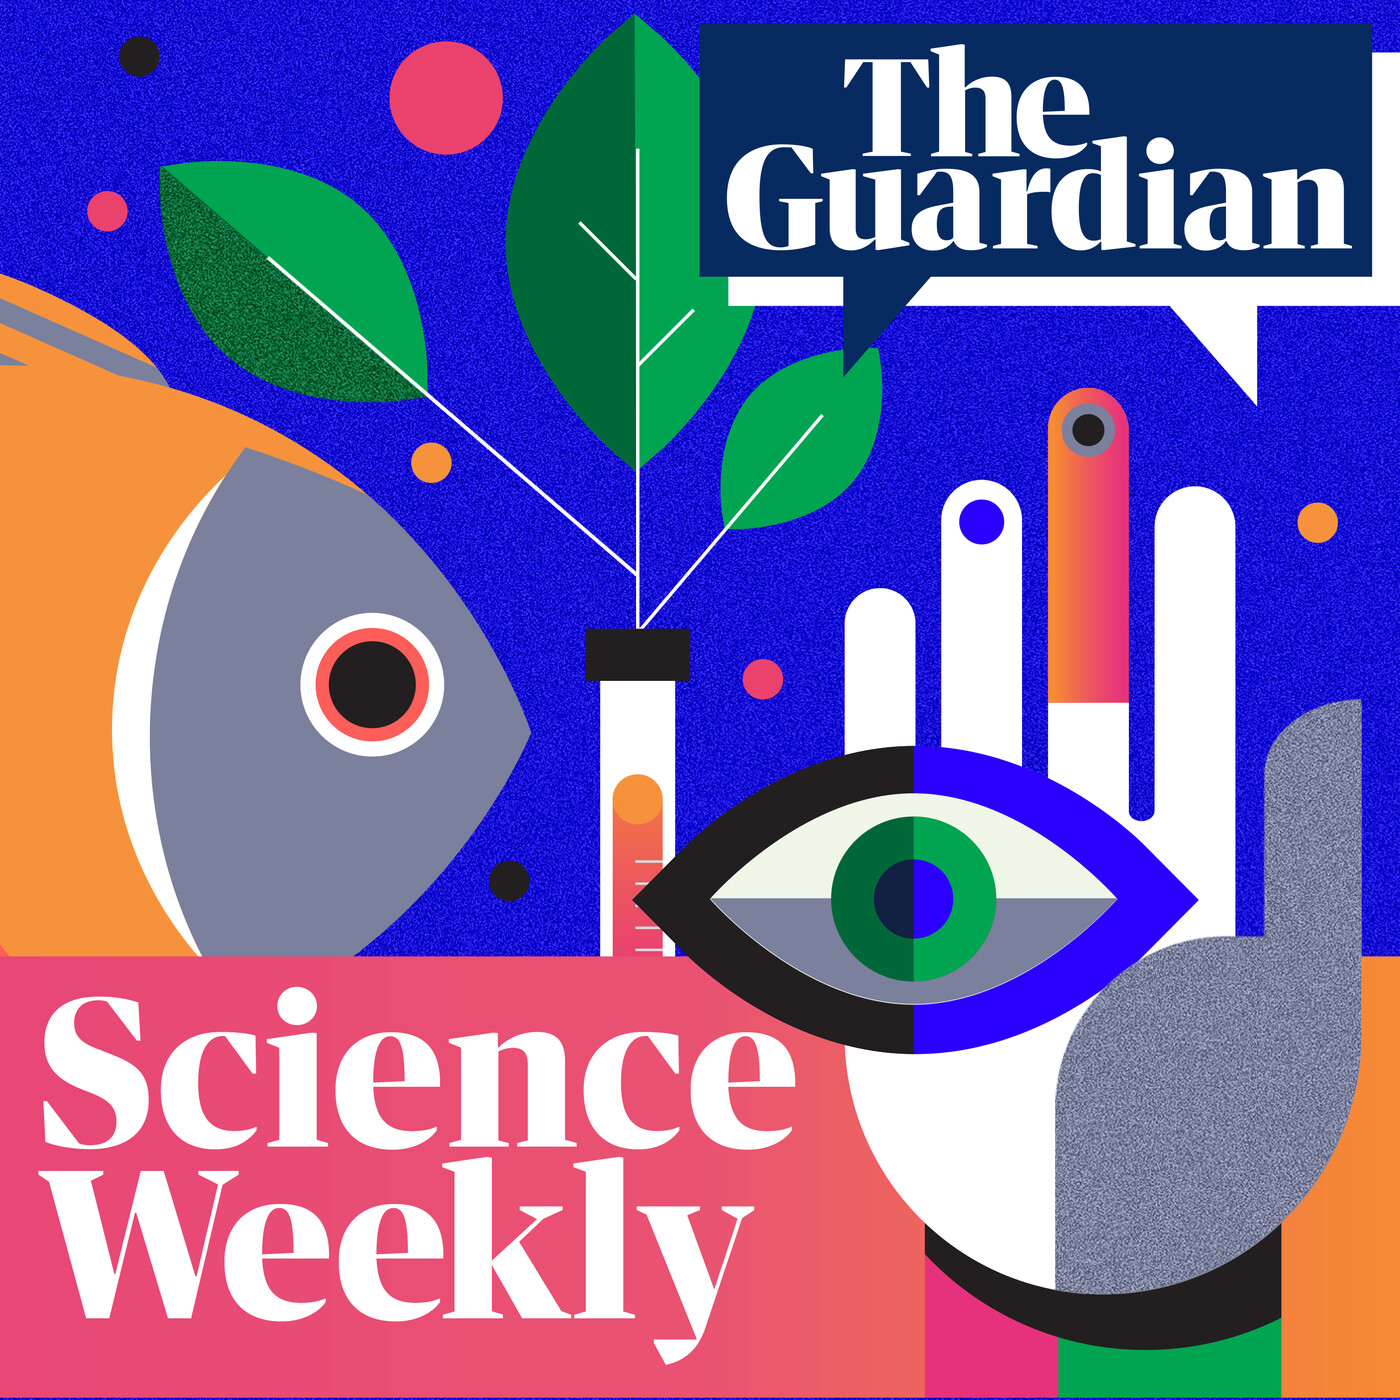 The trouble with science - Science Weekly podcast